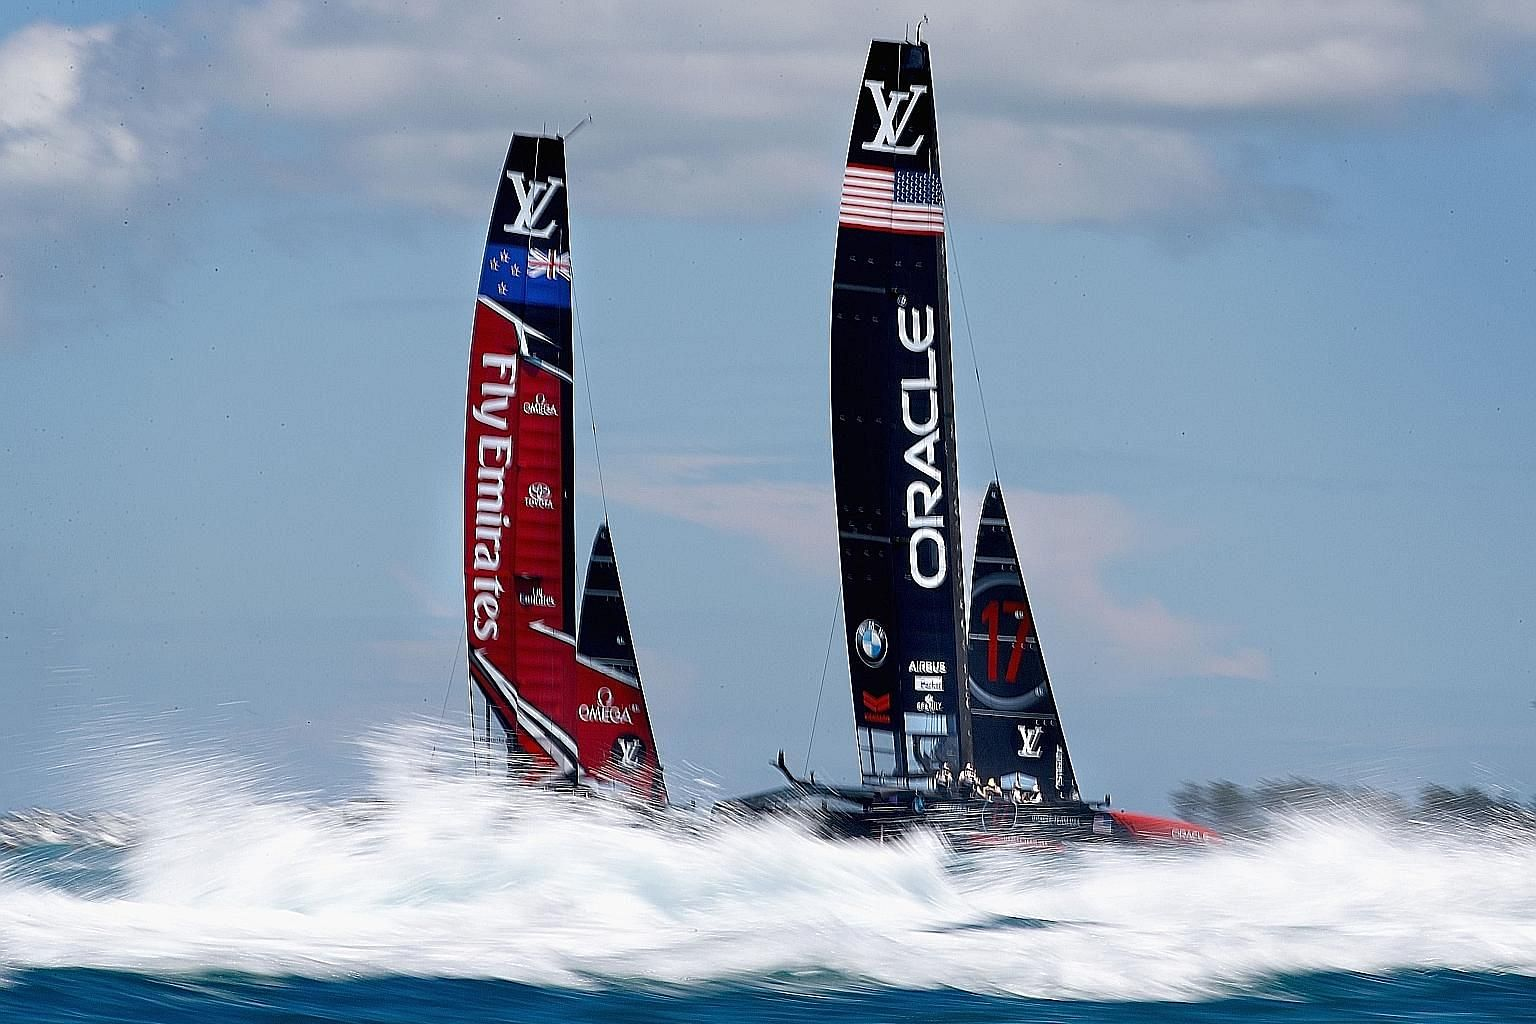 Oracle Team USA skippered by Jimmy Spithill playing catch up against Emirates Team New Zealand helmed by Peter Burling on Sunday in Hamilton, Bermuda. The Kiwis won both races to stretch their America's Cup lead to 6-1 but are taking nothing for gran